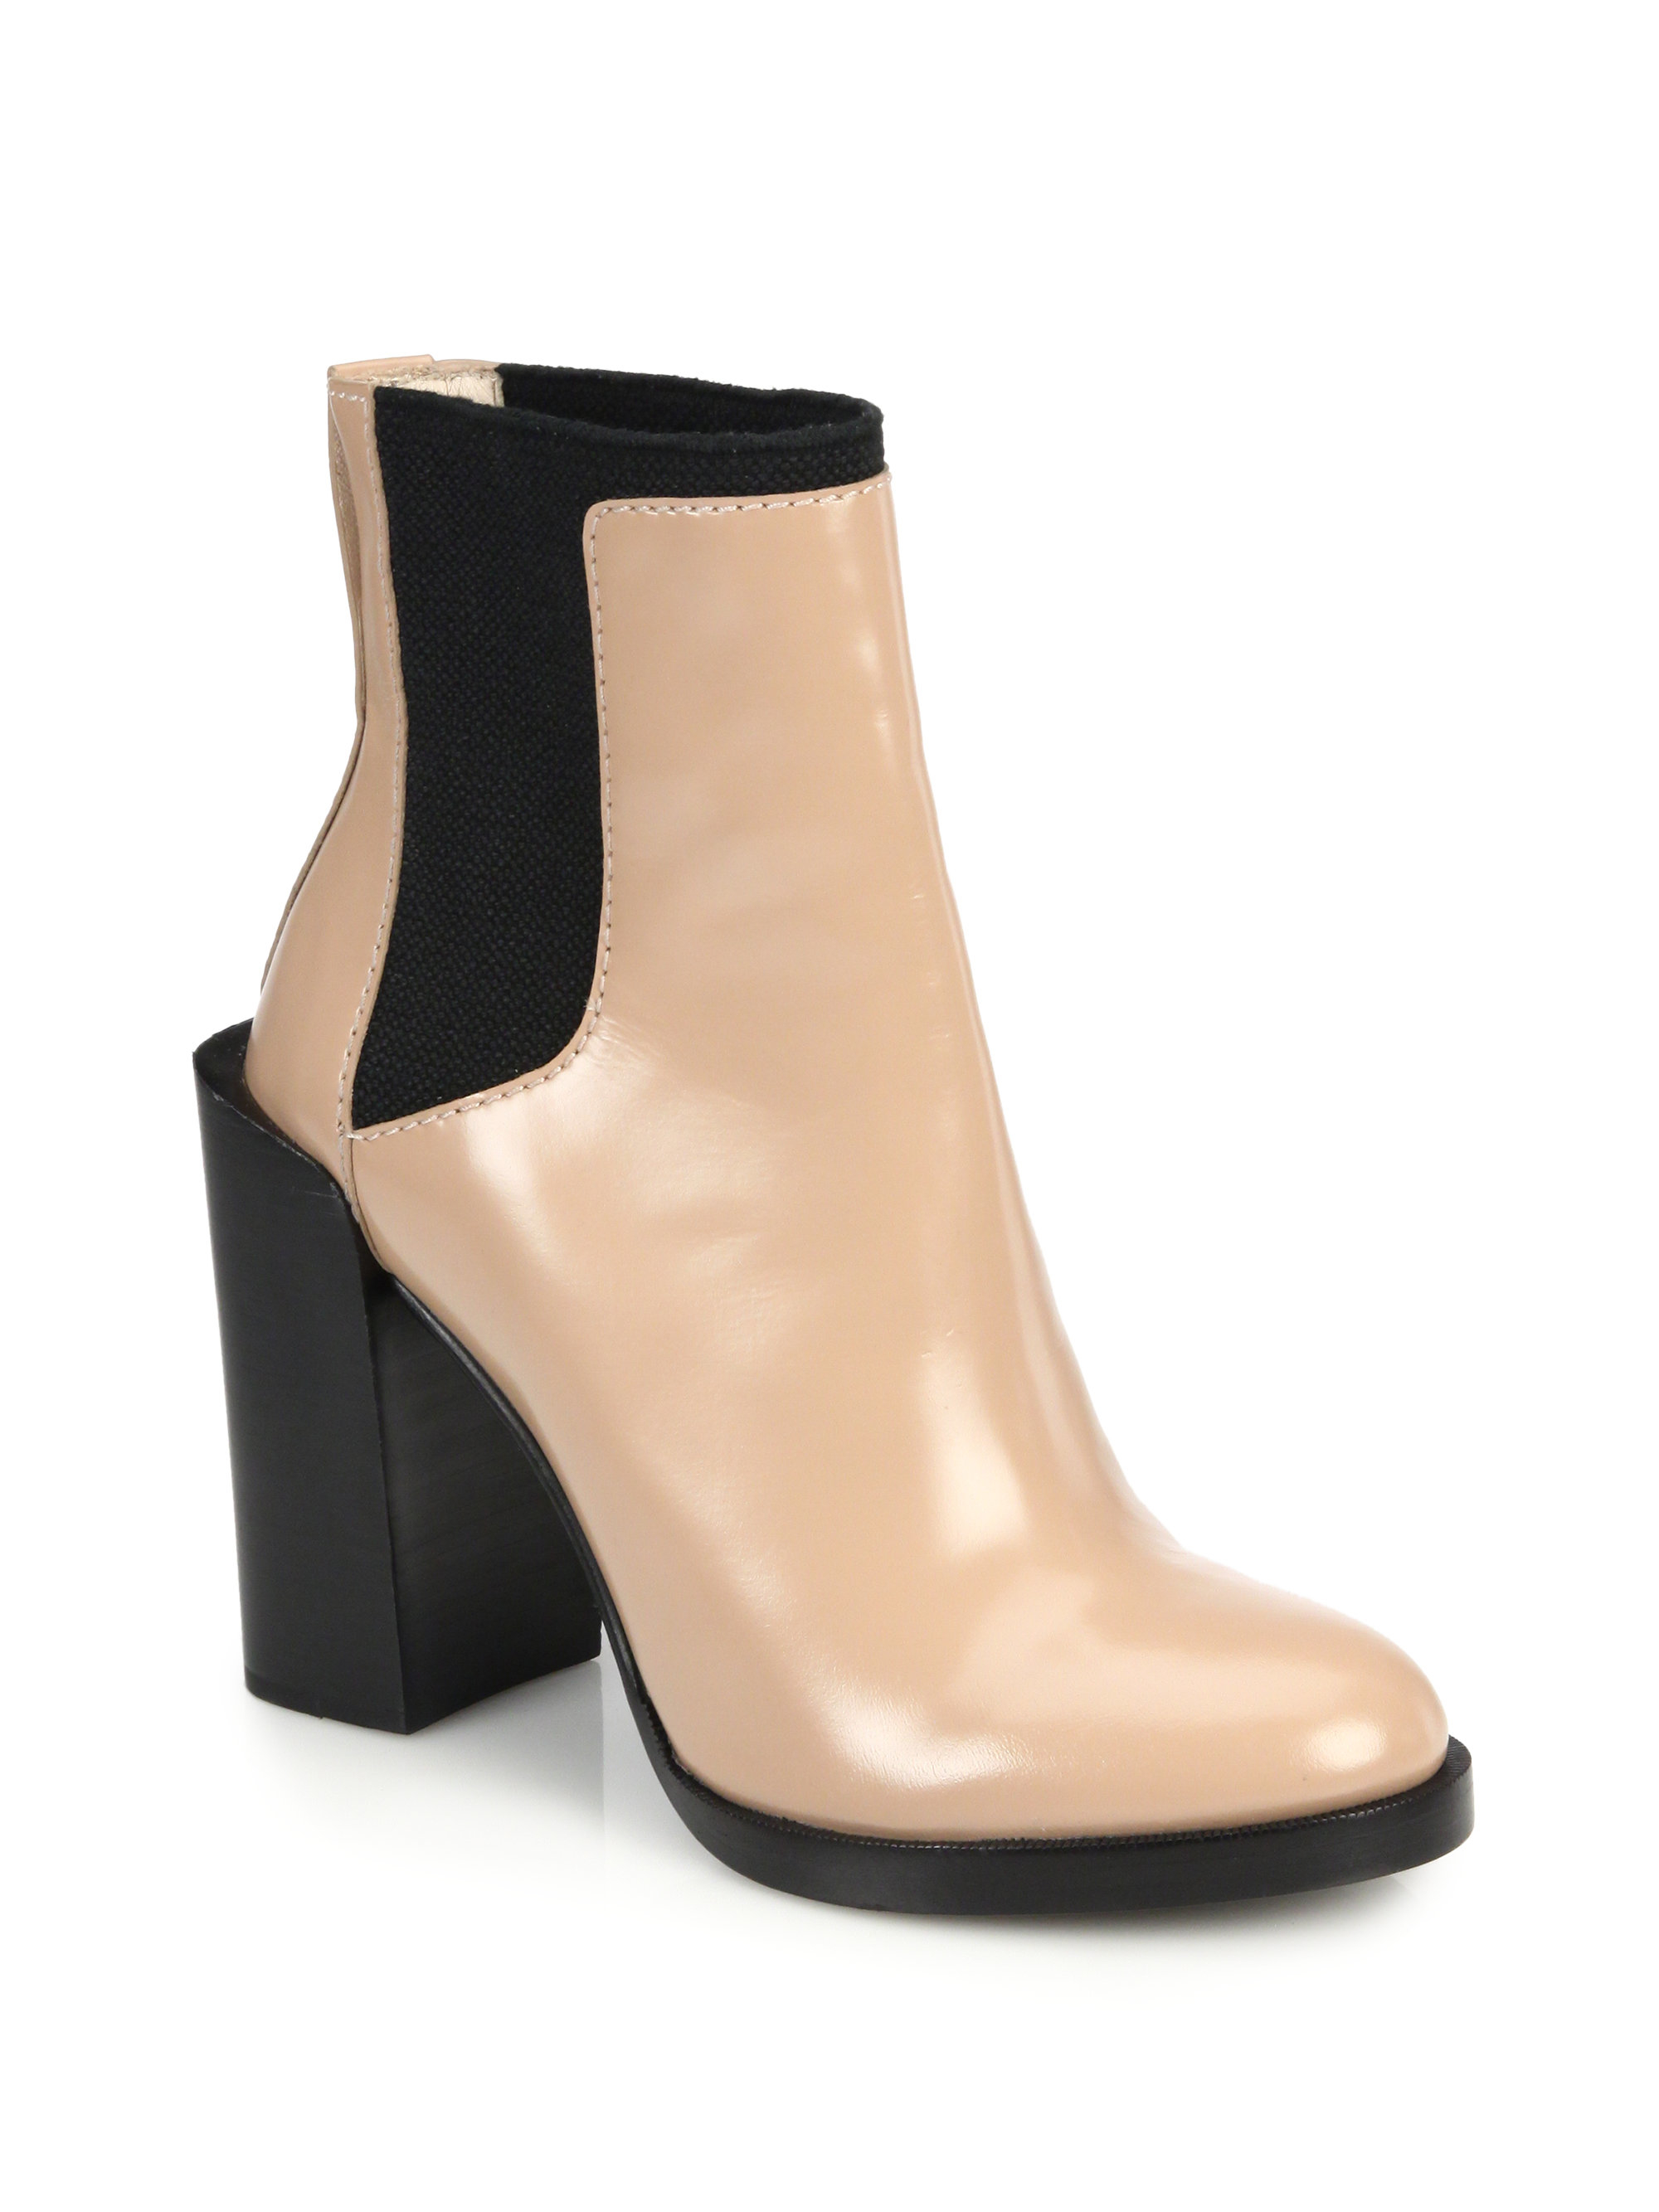 discount authentic online cheap cheap online 3.1 Phillip Lim Leather Pointed-Toe Ankle Boots discount cost with credit card sale online j6VCe7kg7